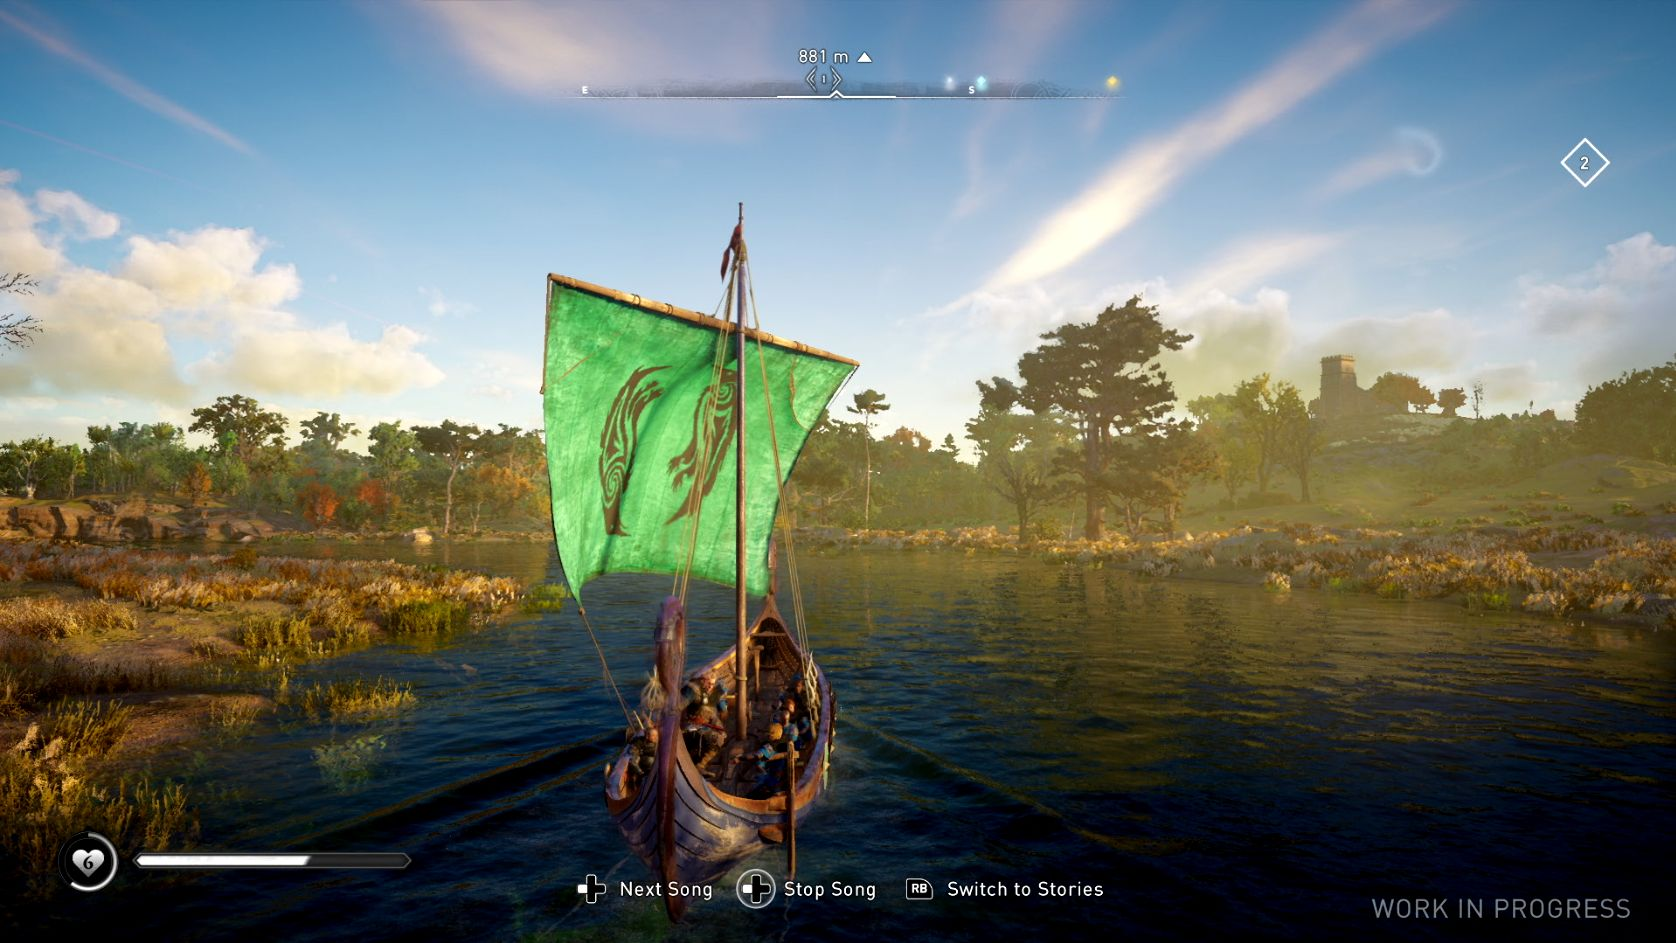 A screenshot showing your viking longboat on a river